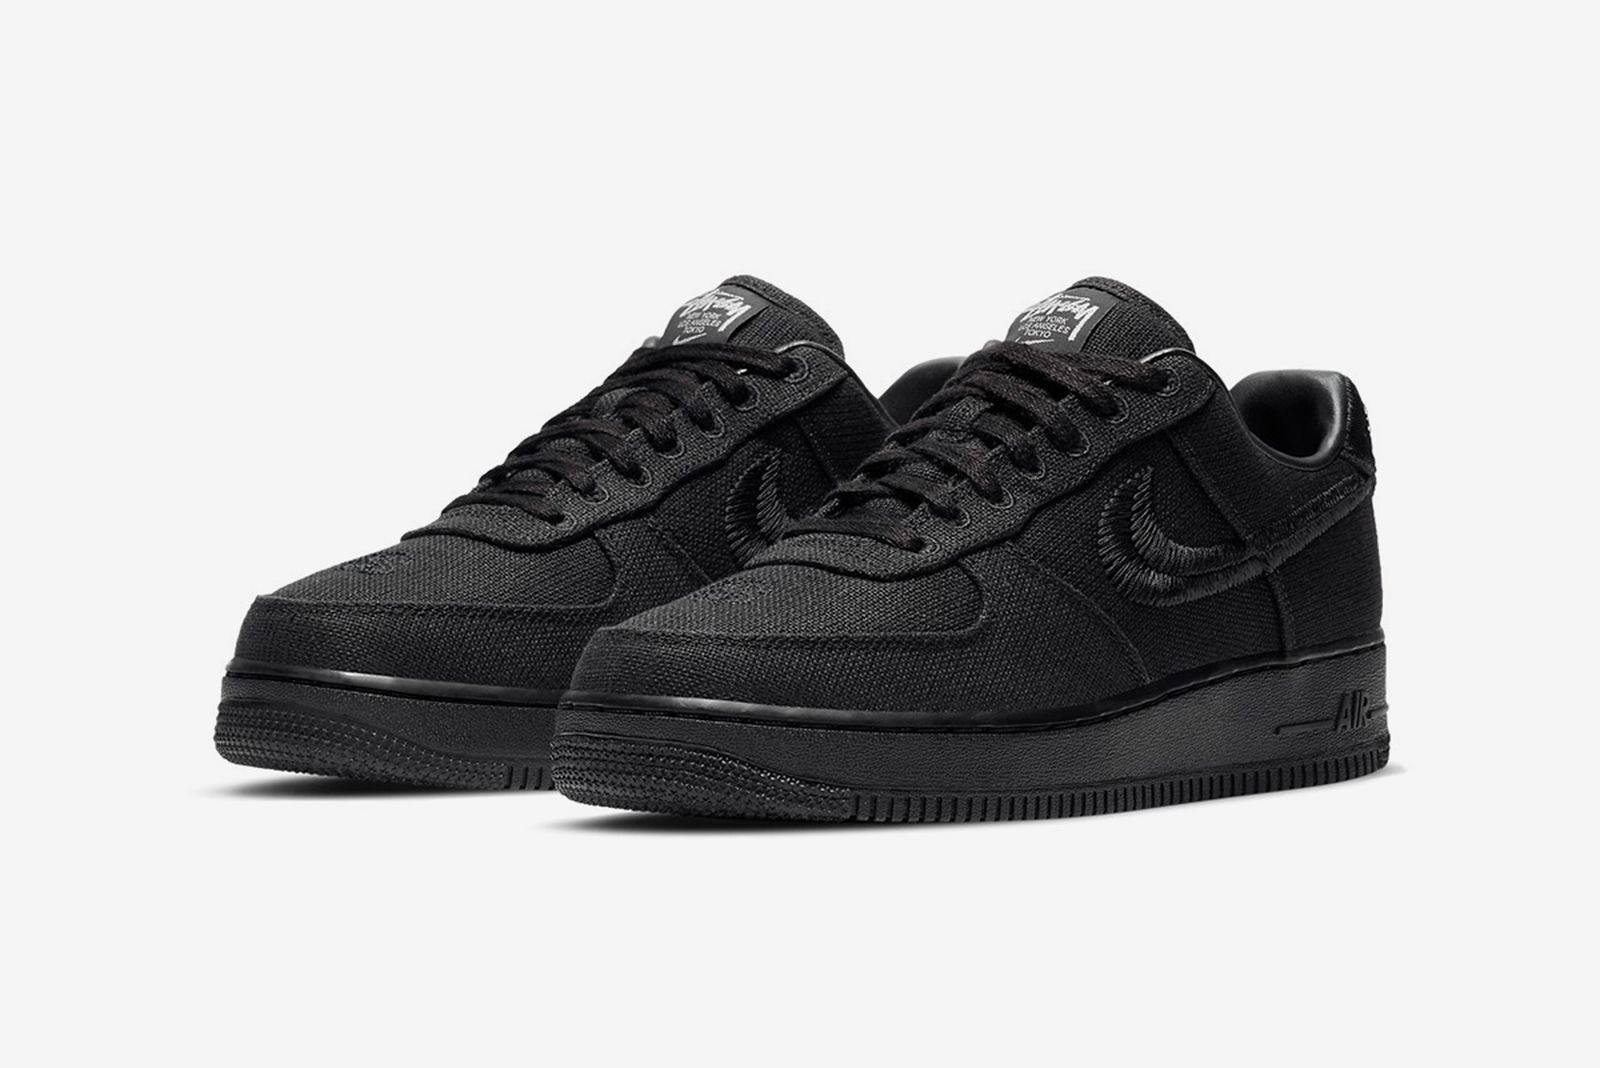 stussy-nike-air-force-1-release-date-price-03